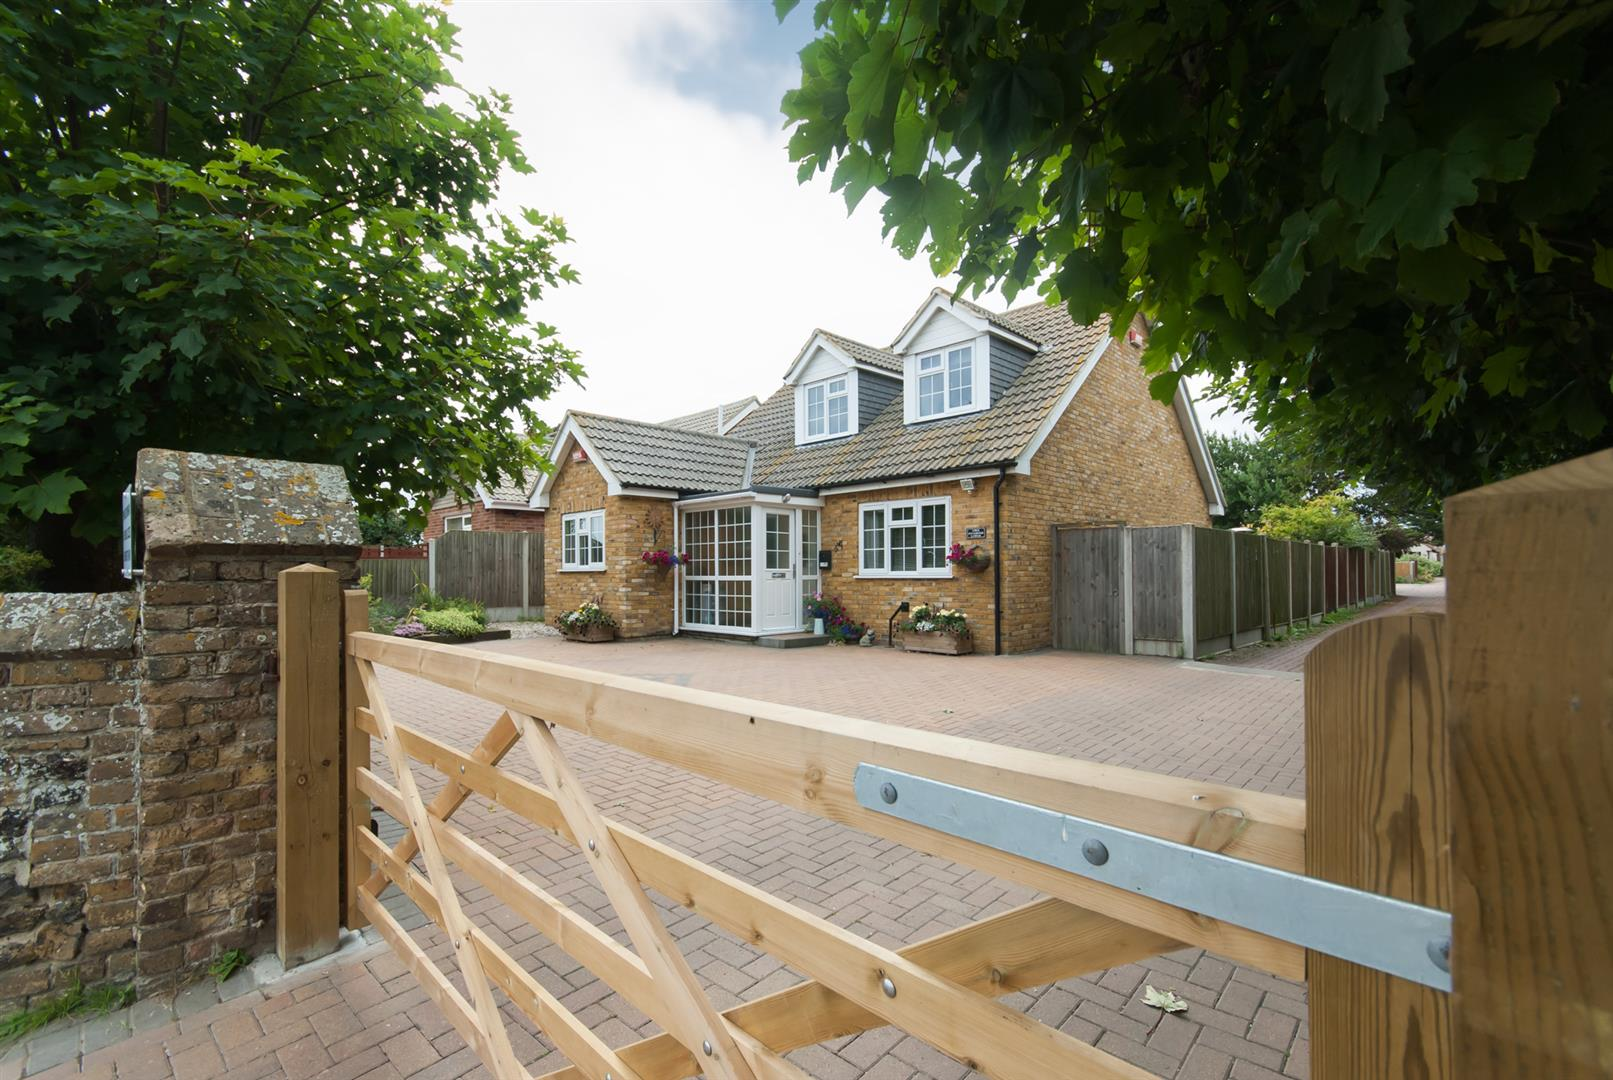 4 Bedrooms Chalet House for sale in Minster Road, WESTGATE-ON-SEA